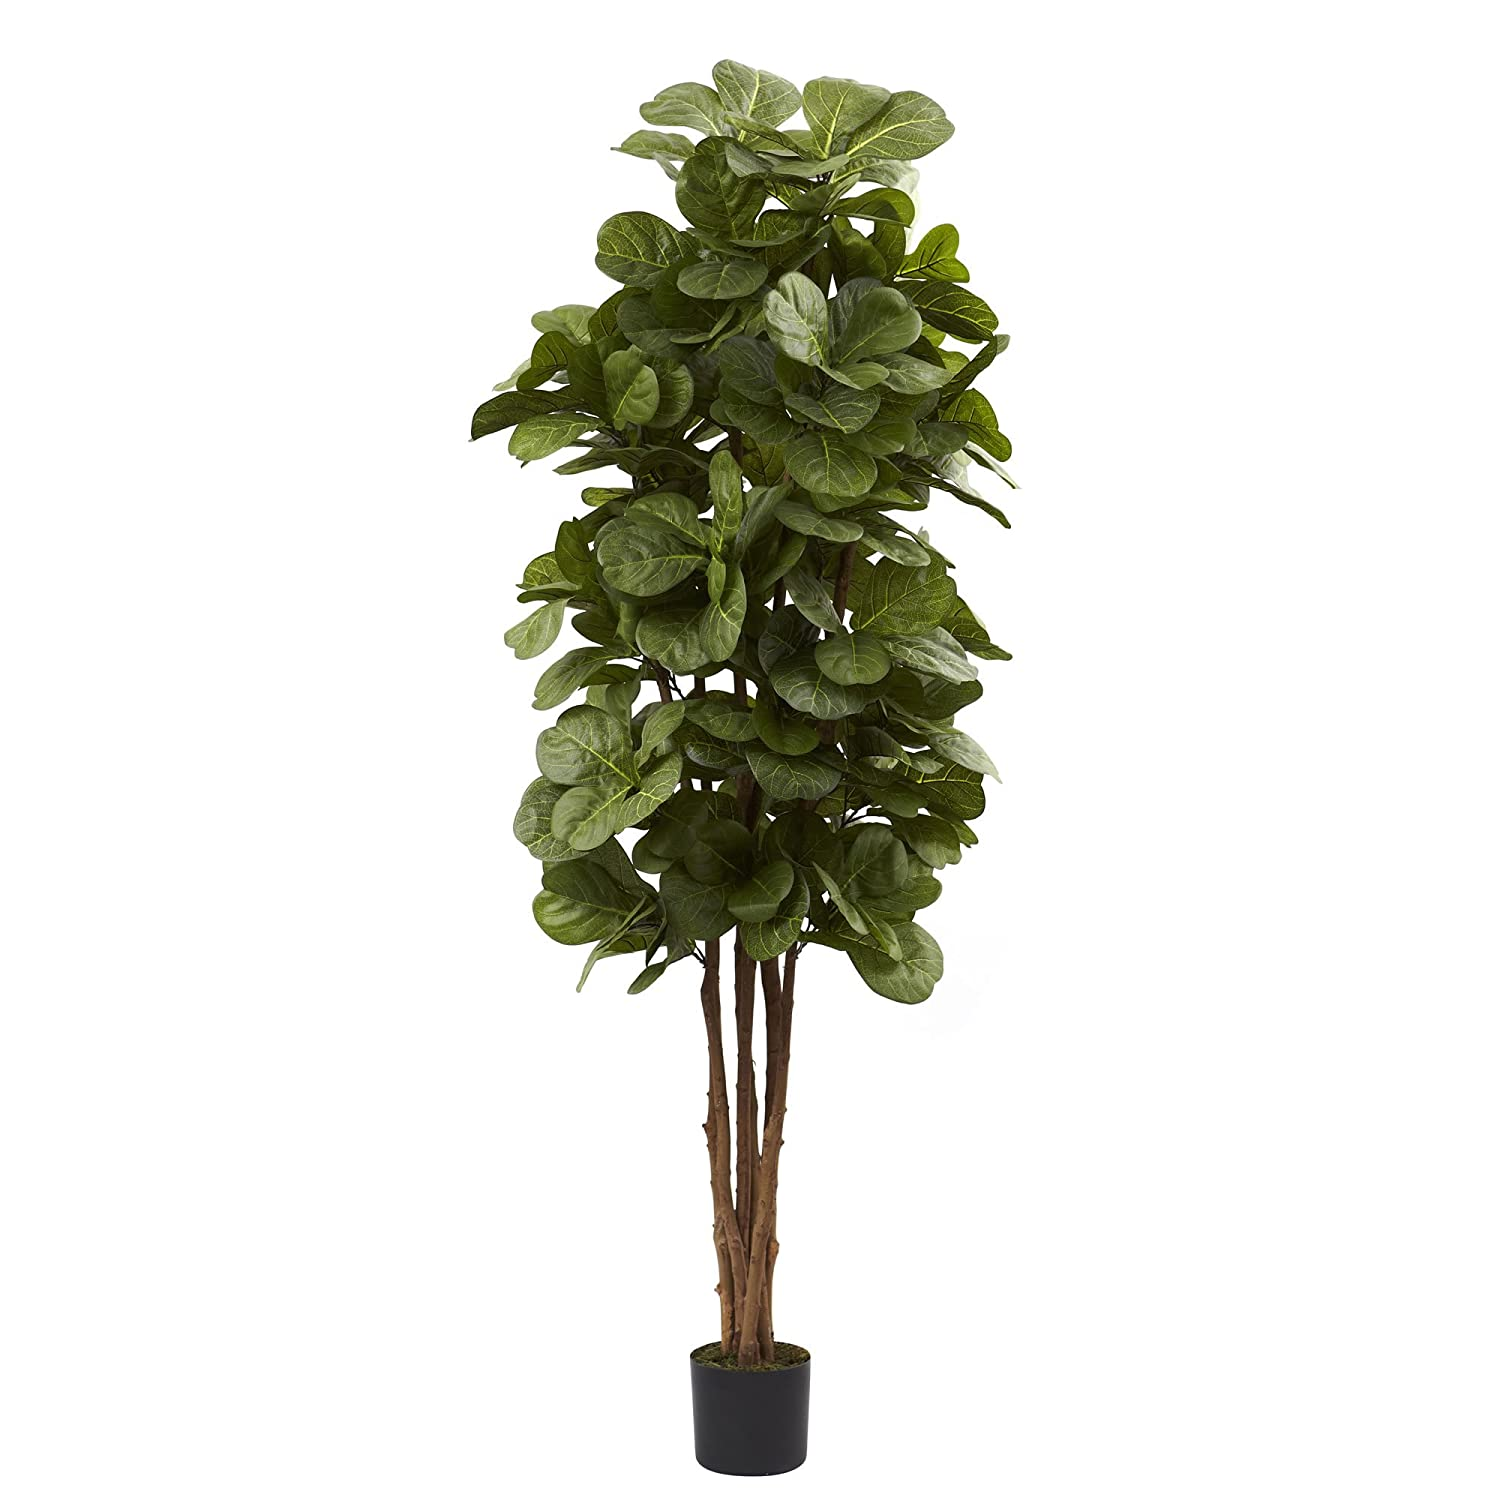 Unthinkable House Plant Tree. In its list of  13 Great Indoor Trees it described how Fiddle Leaf Figs thrive and can be nurtured chadchaffin Author at Your Market Garden